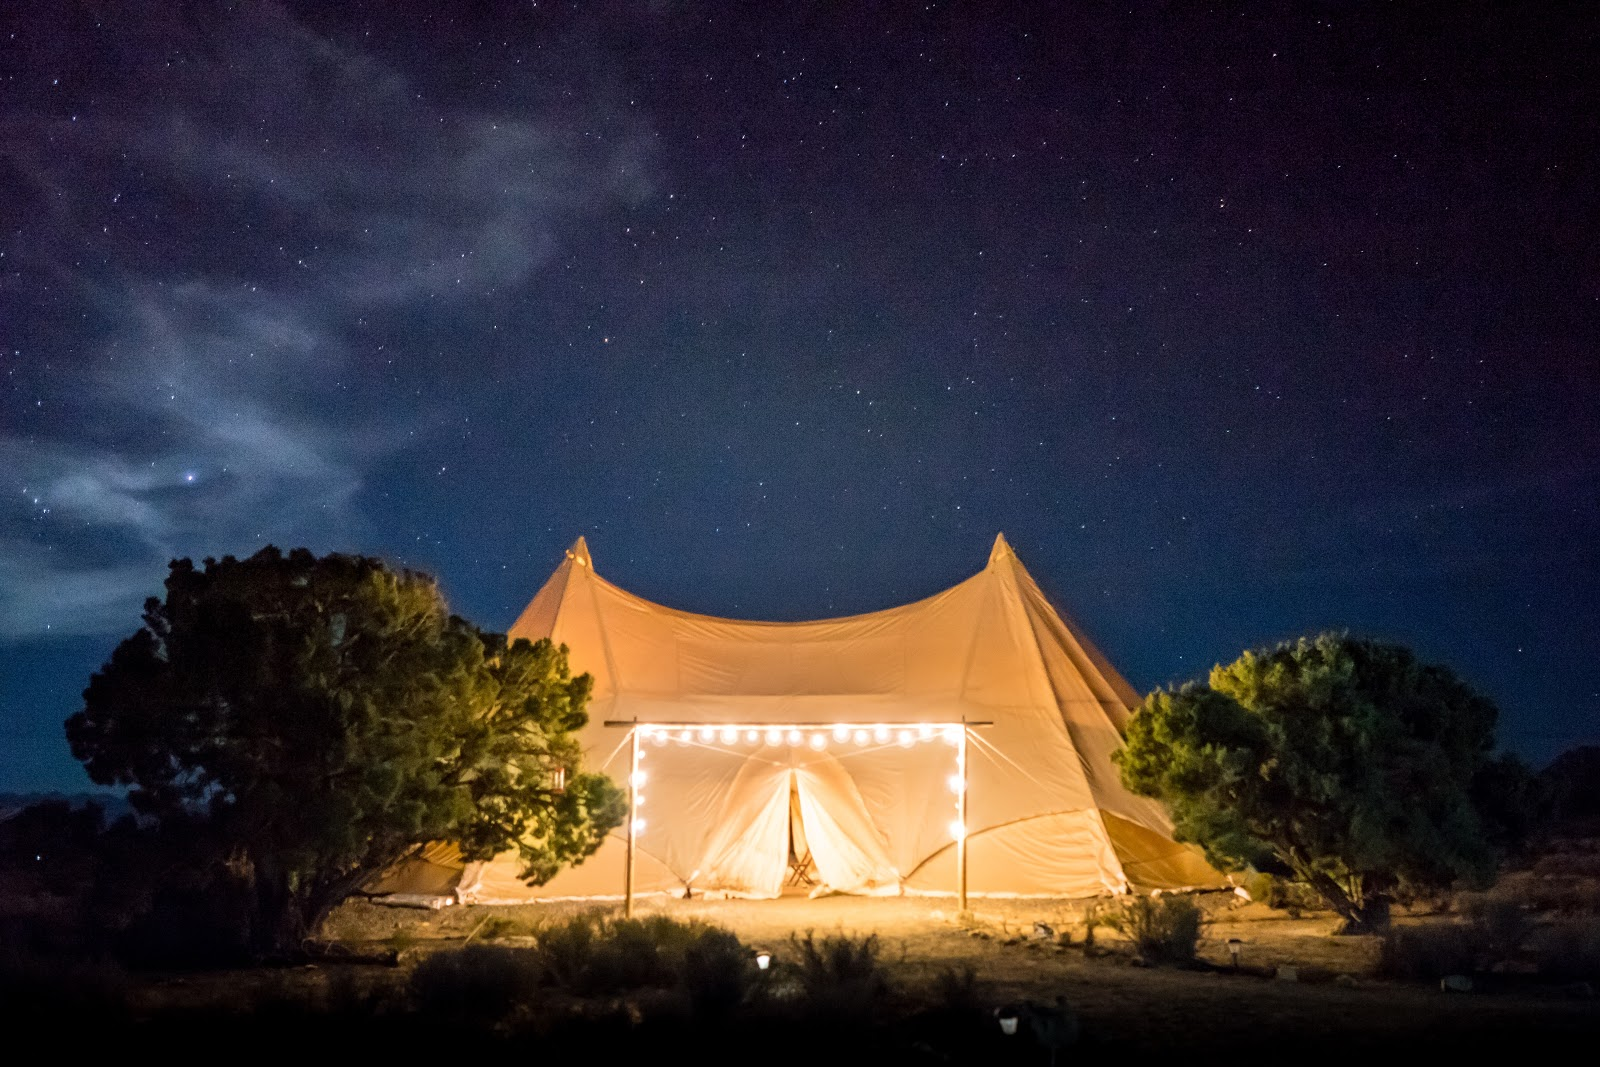 tent lit up by string lights at night time